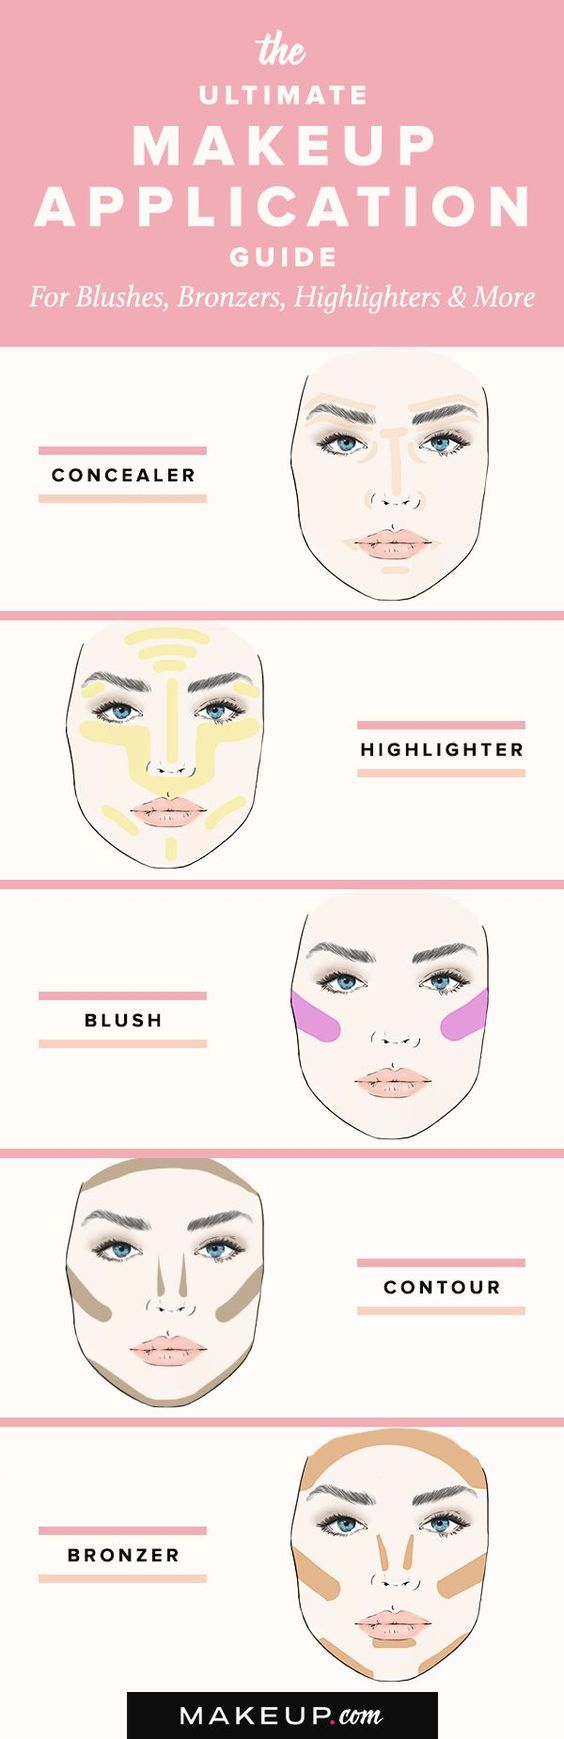 Our ultimate guide for applying concealer, bronzer, highlighter and blush is the only step by step makeup tutorial you need! http://www.makeup.com/makeup-application-guide?utm_term=Guide